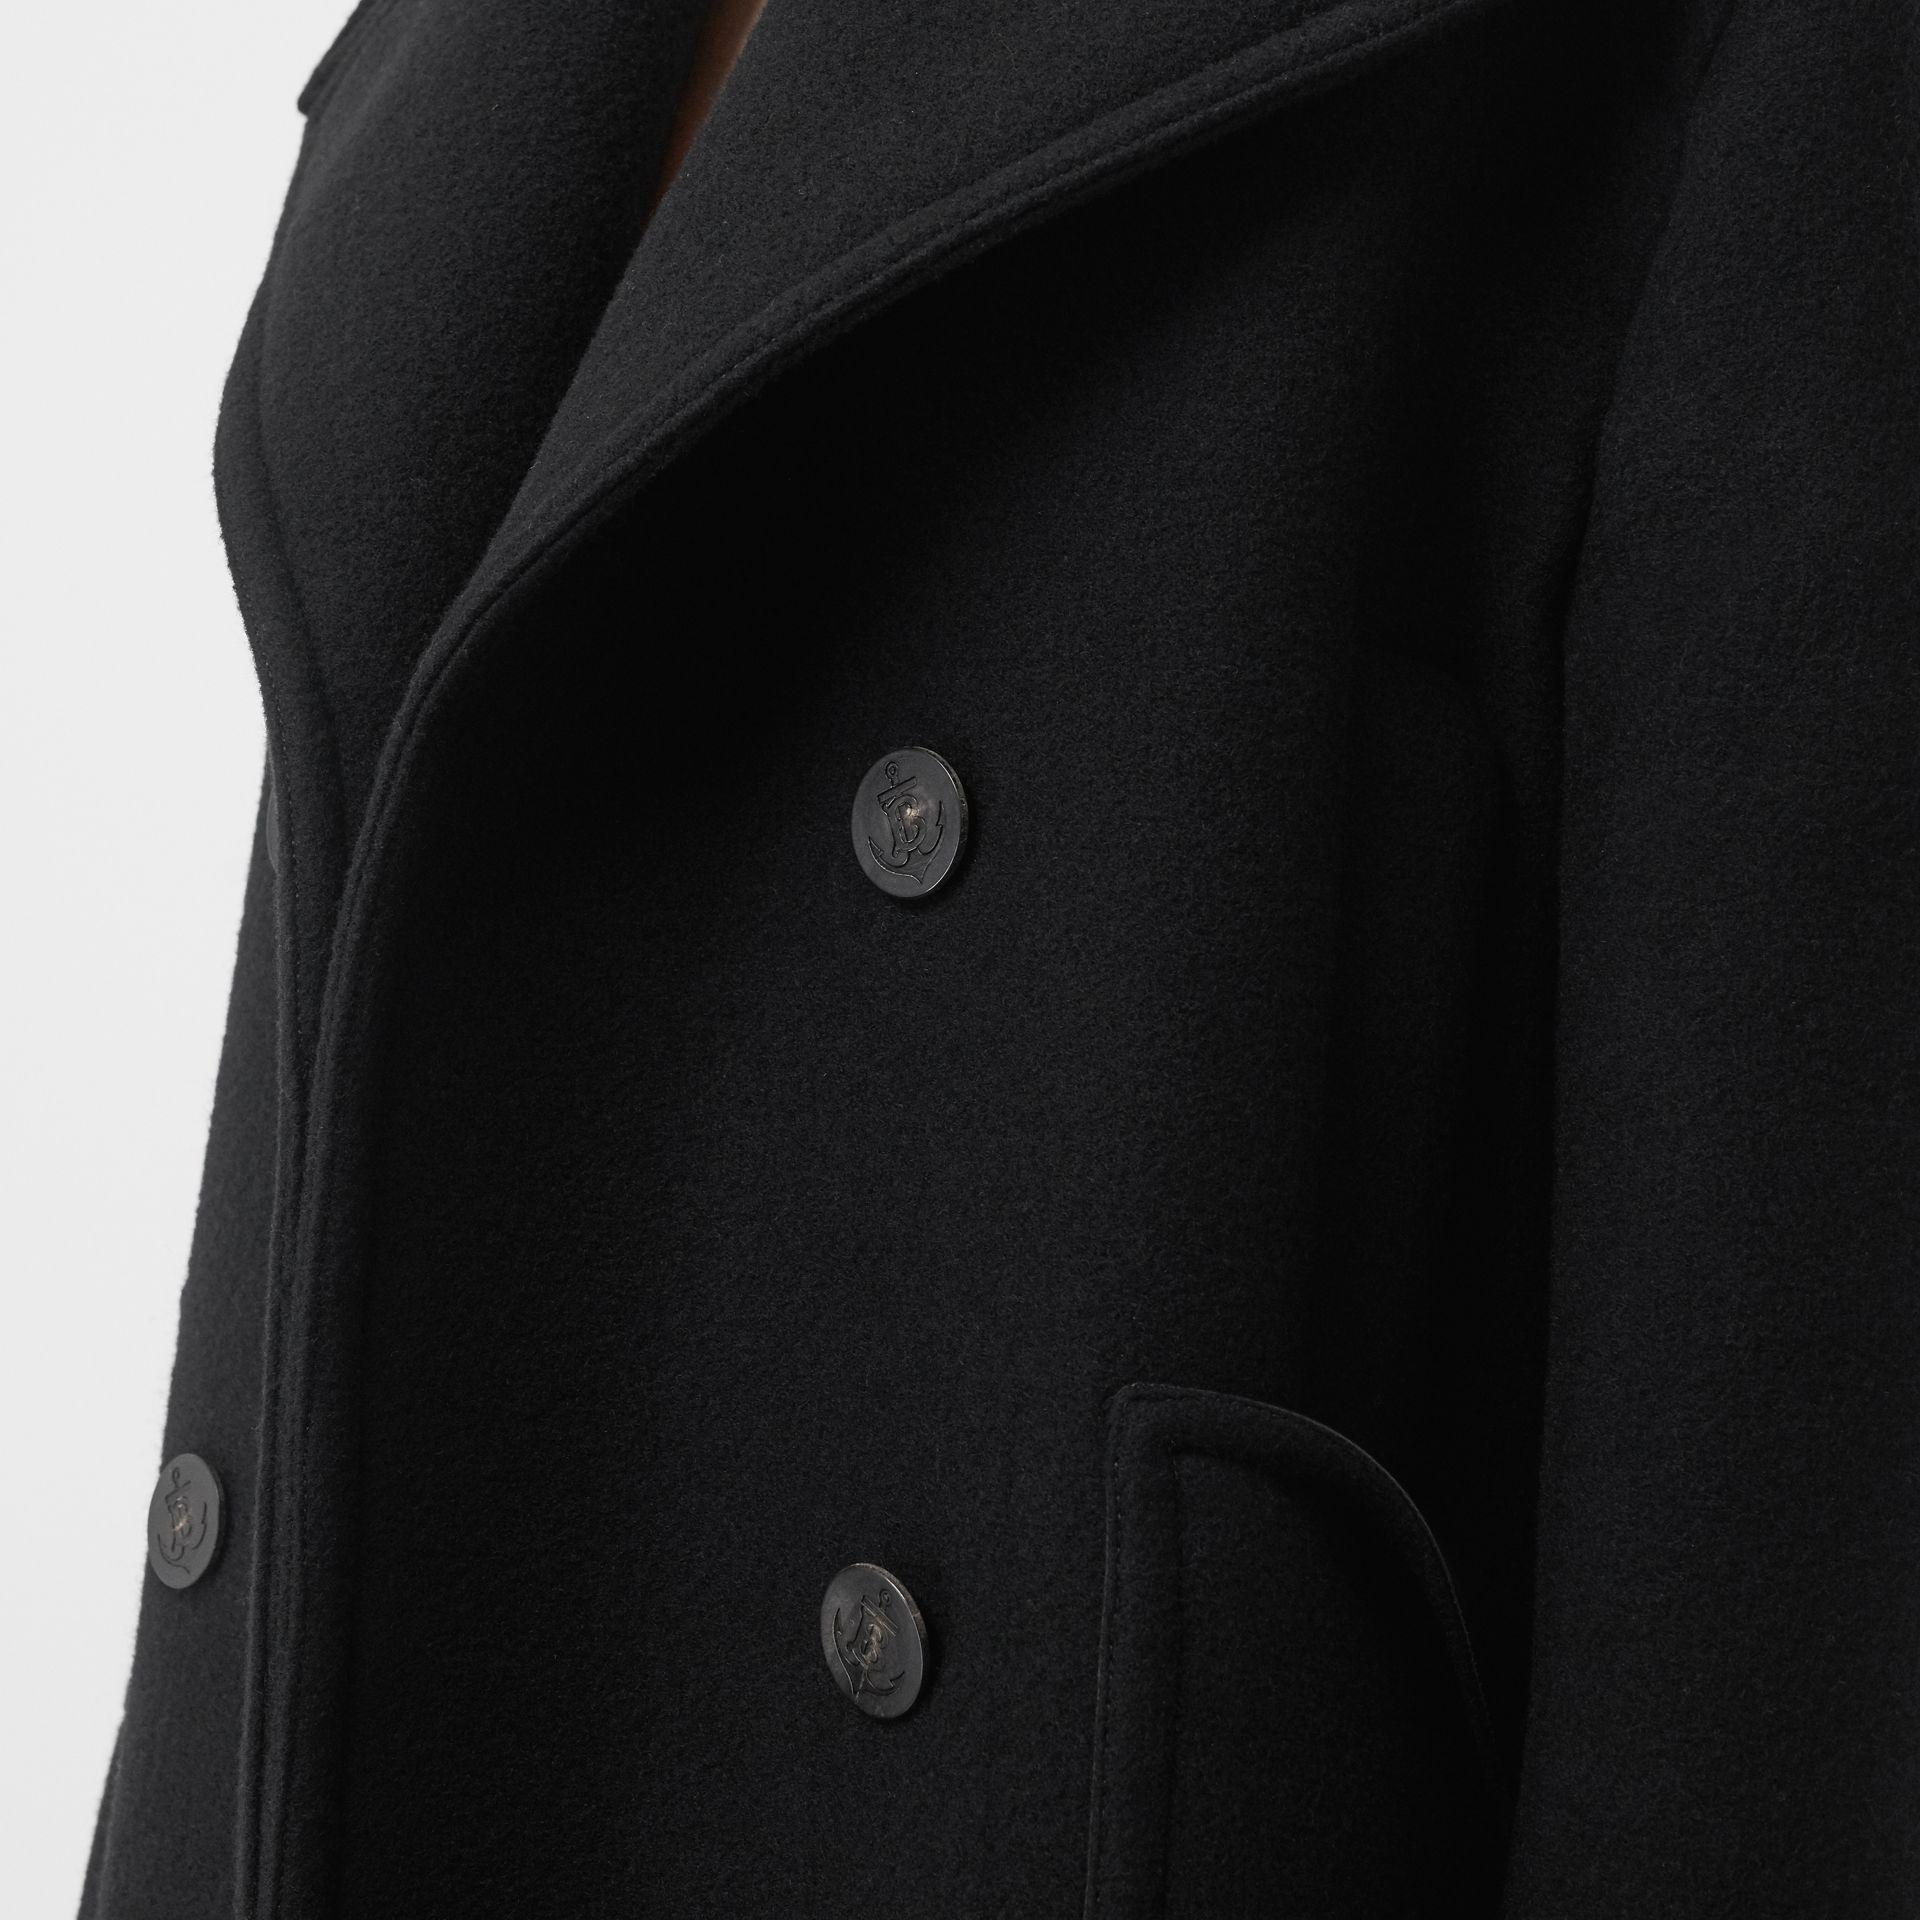 Wool Oversized Pea Coat in Black - Women | Burberry - gallery image 4